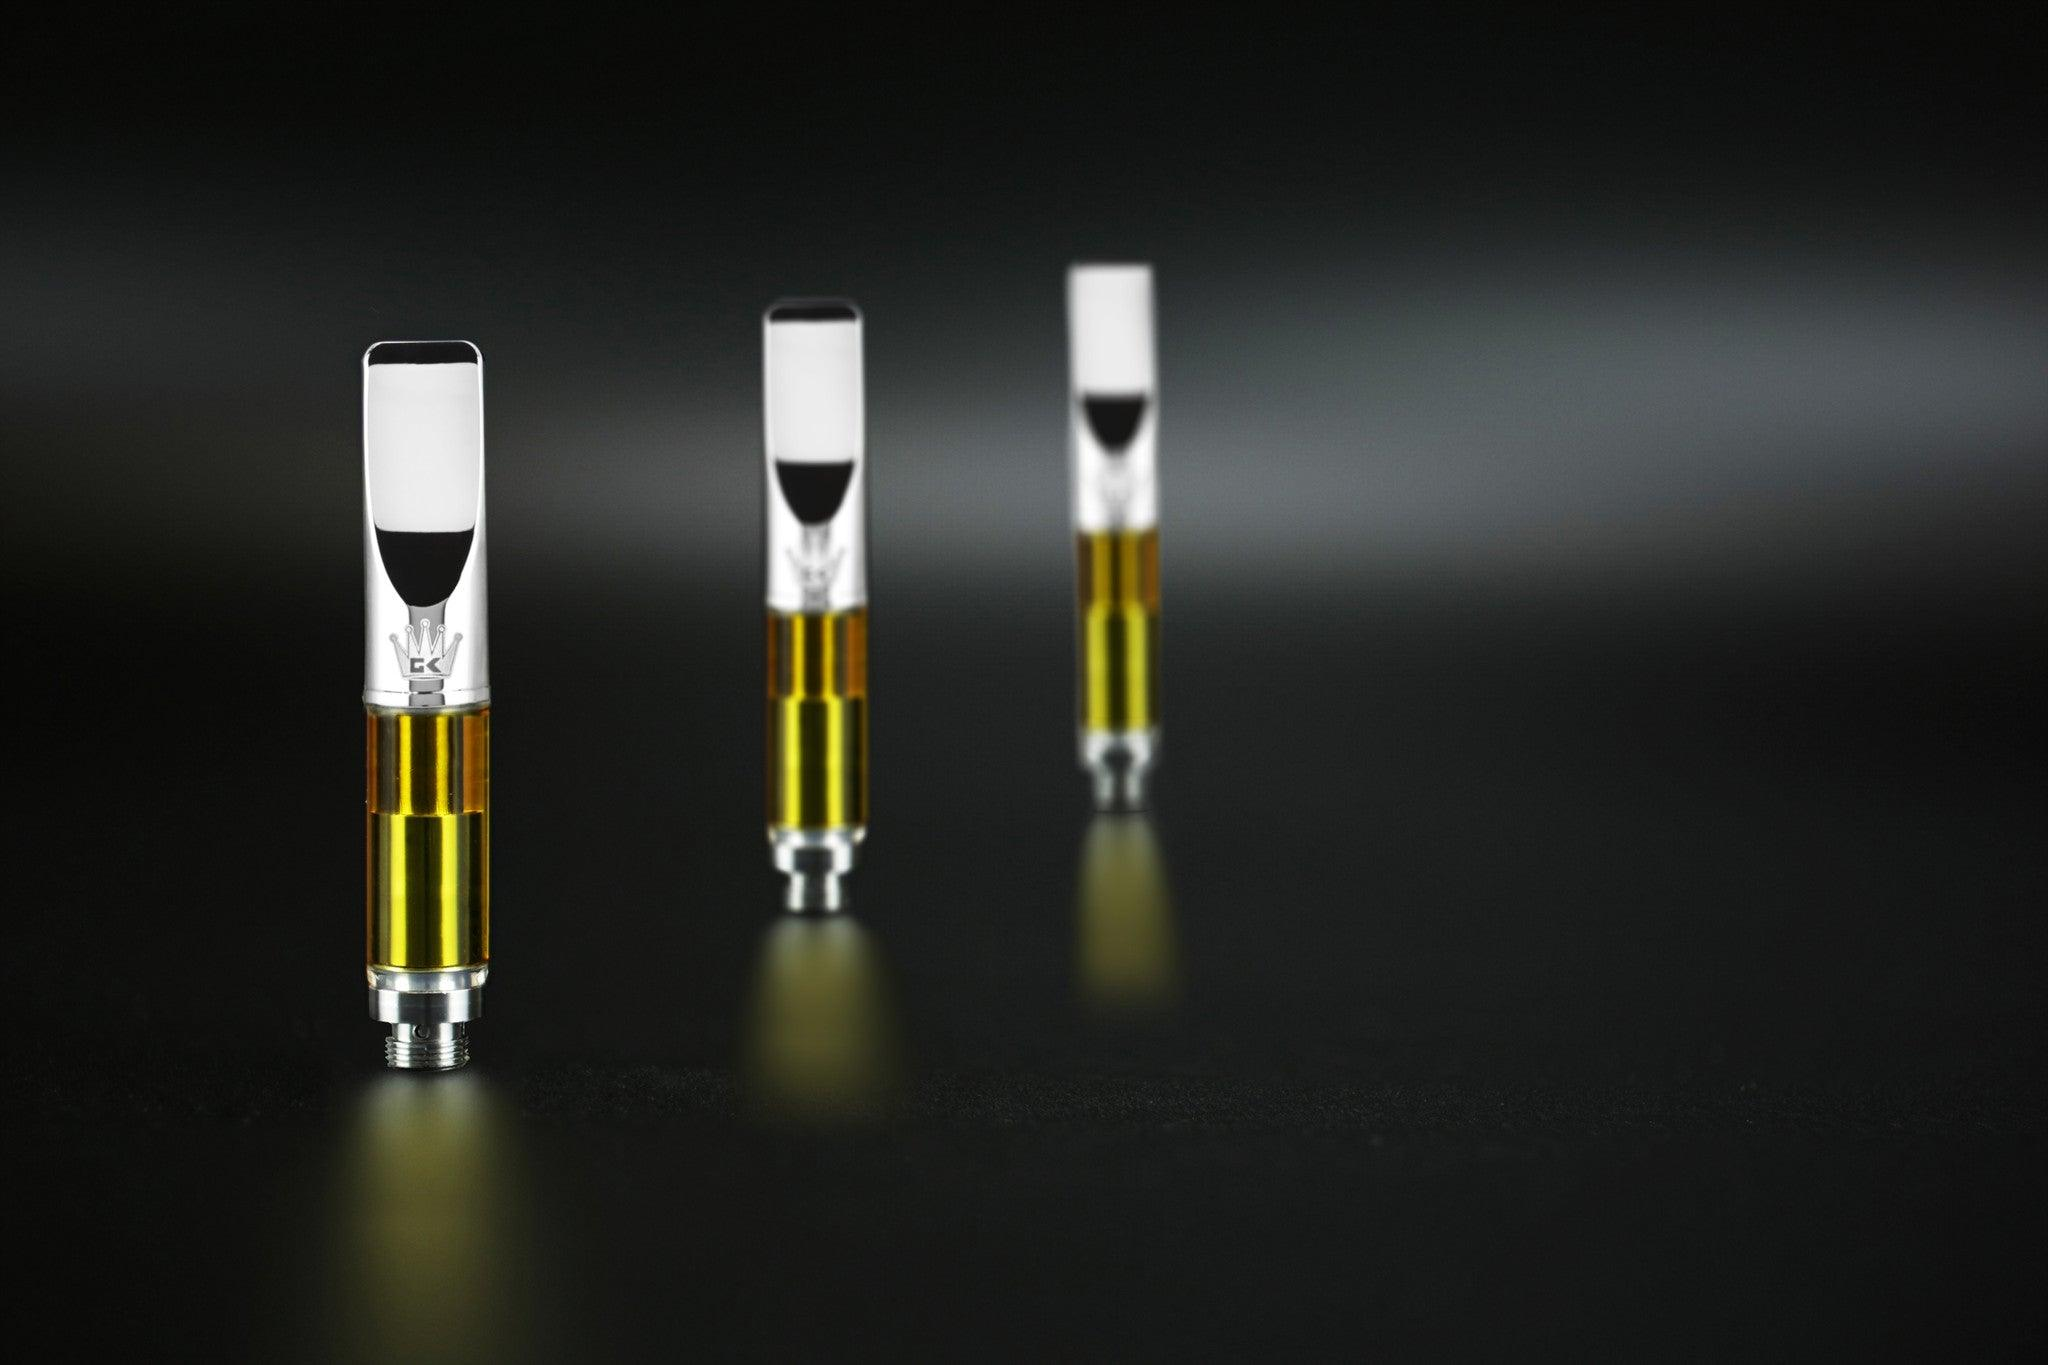 Cartridges and product photos (9 styles) - Photography and Web Design - Los Angeles, US based Shopify Experts Revo Designs